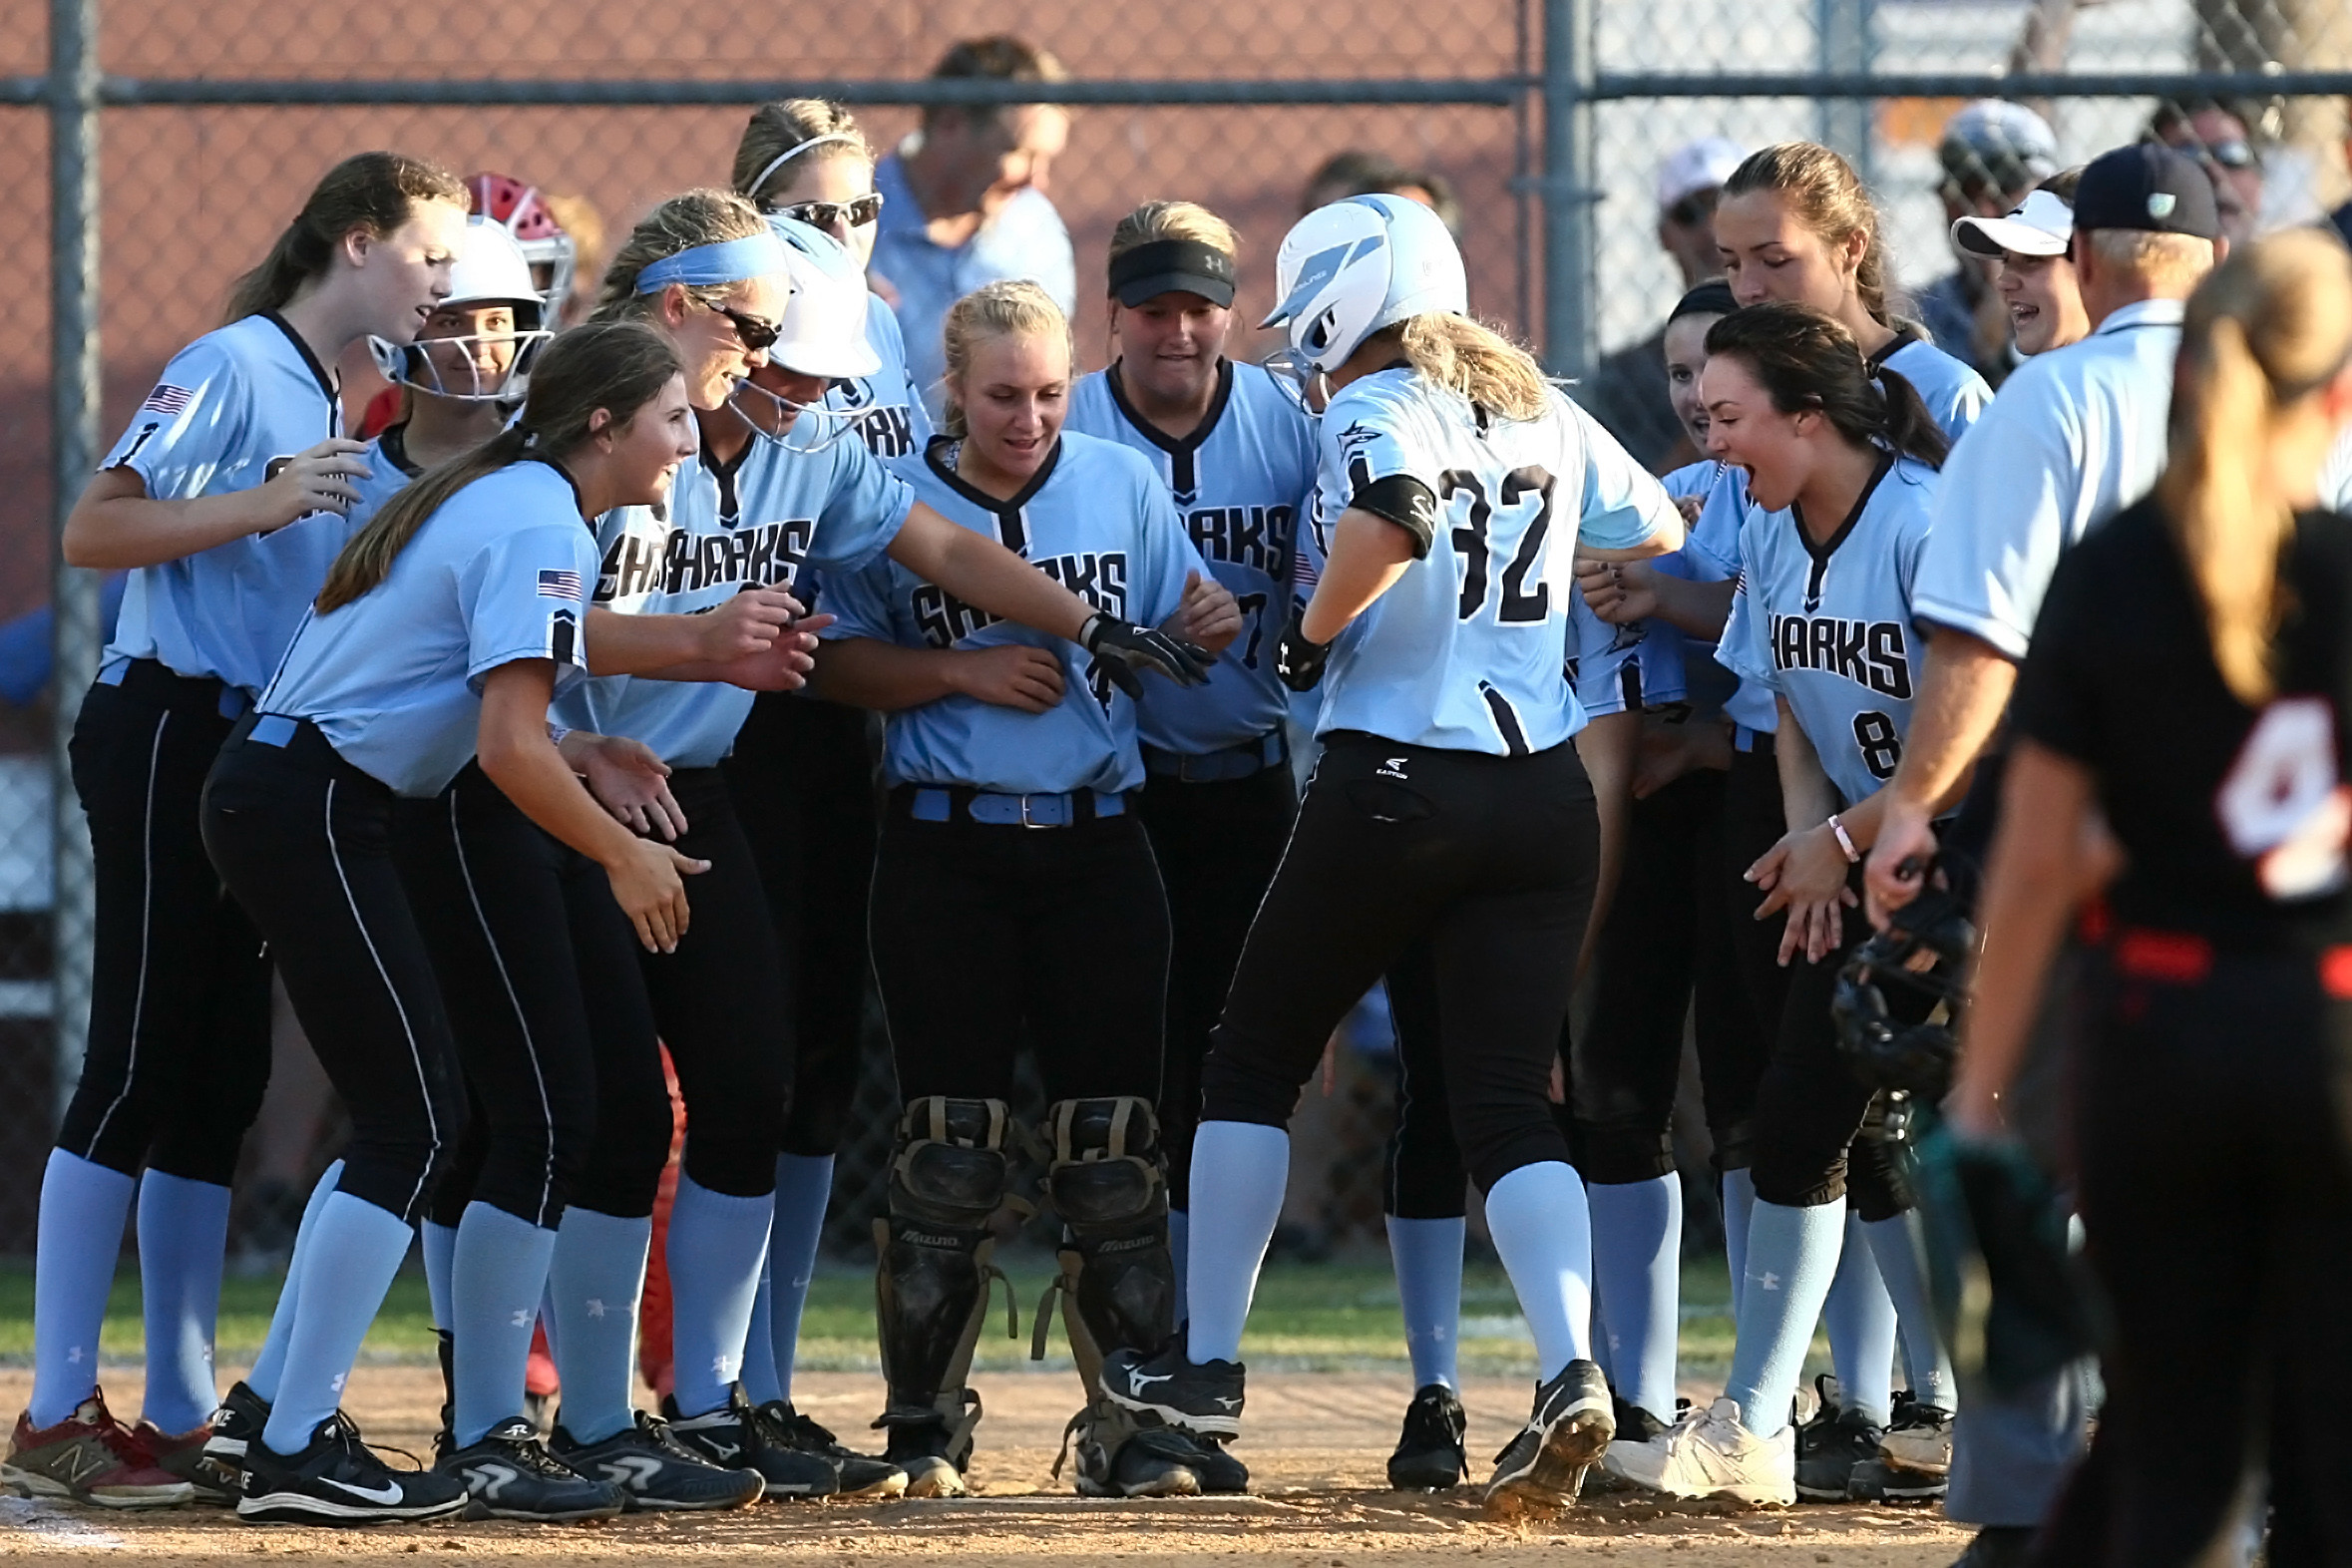 Sharks welcome #32 Farley Callaghan at the plate after her two-run home run.